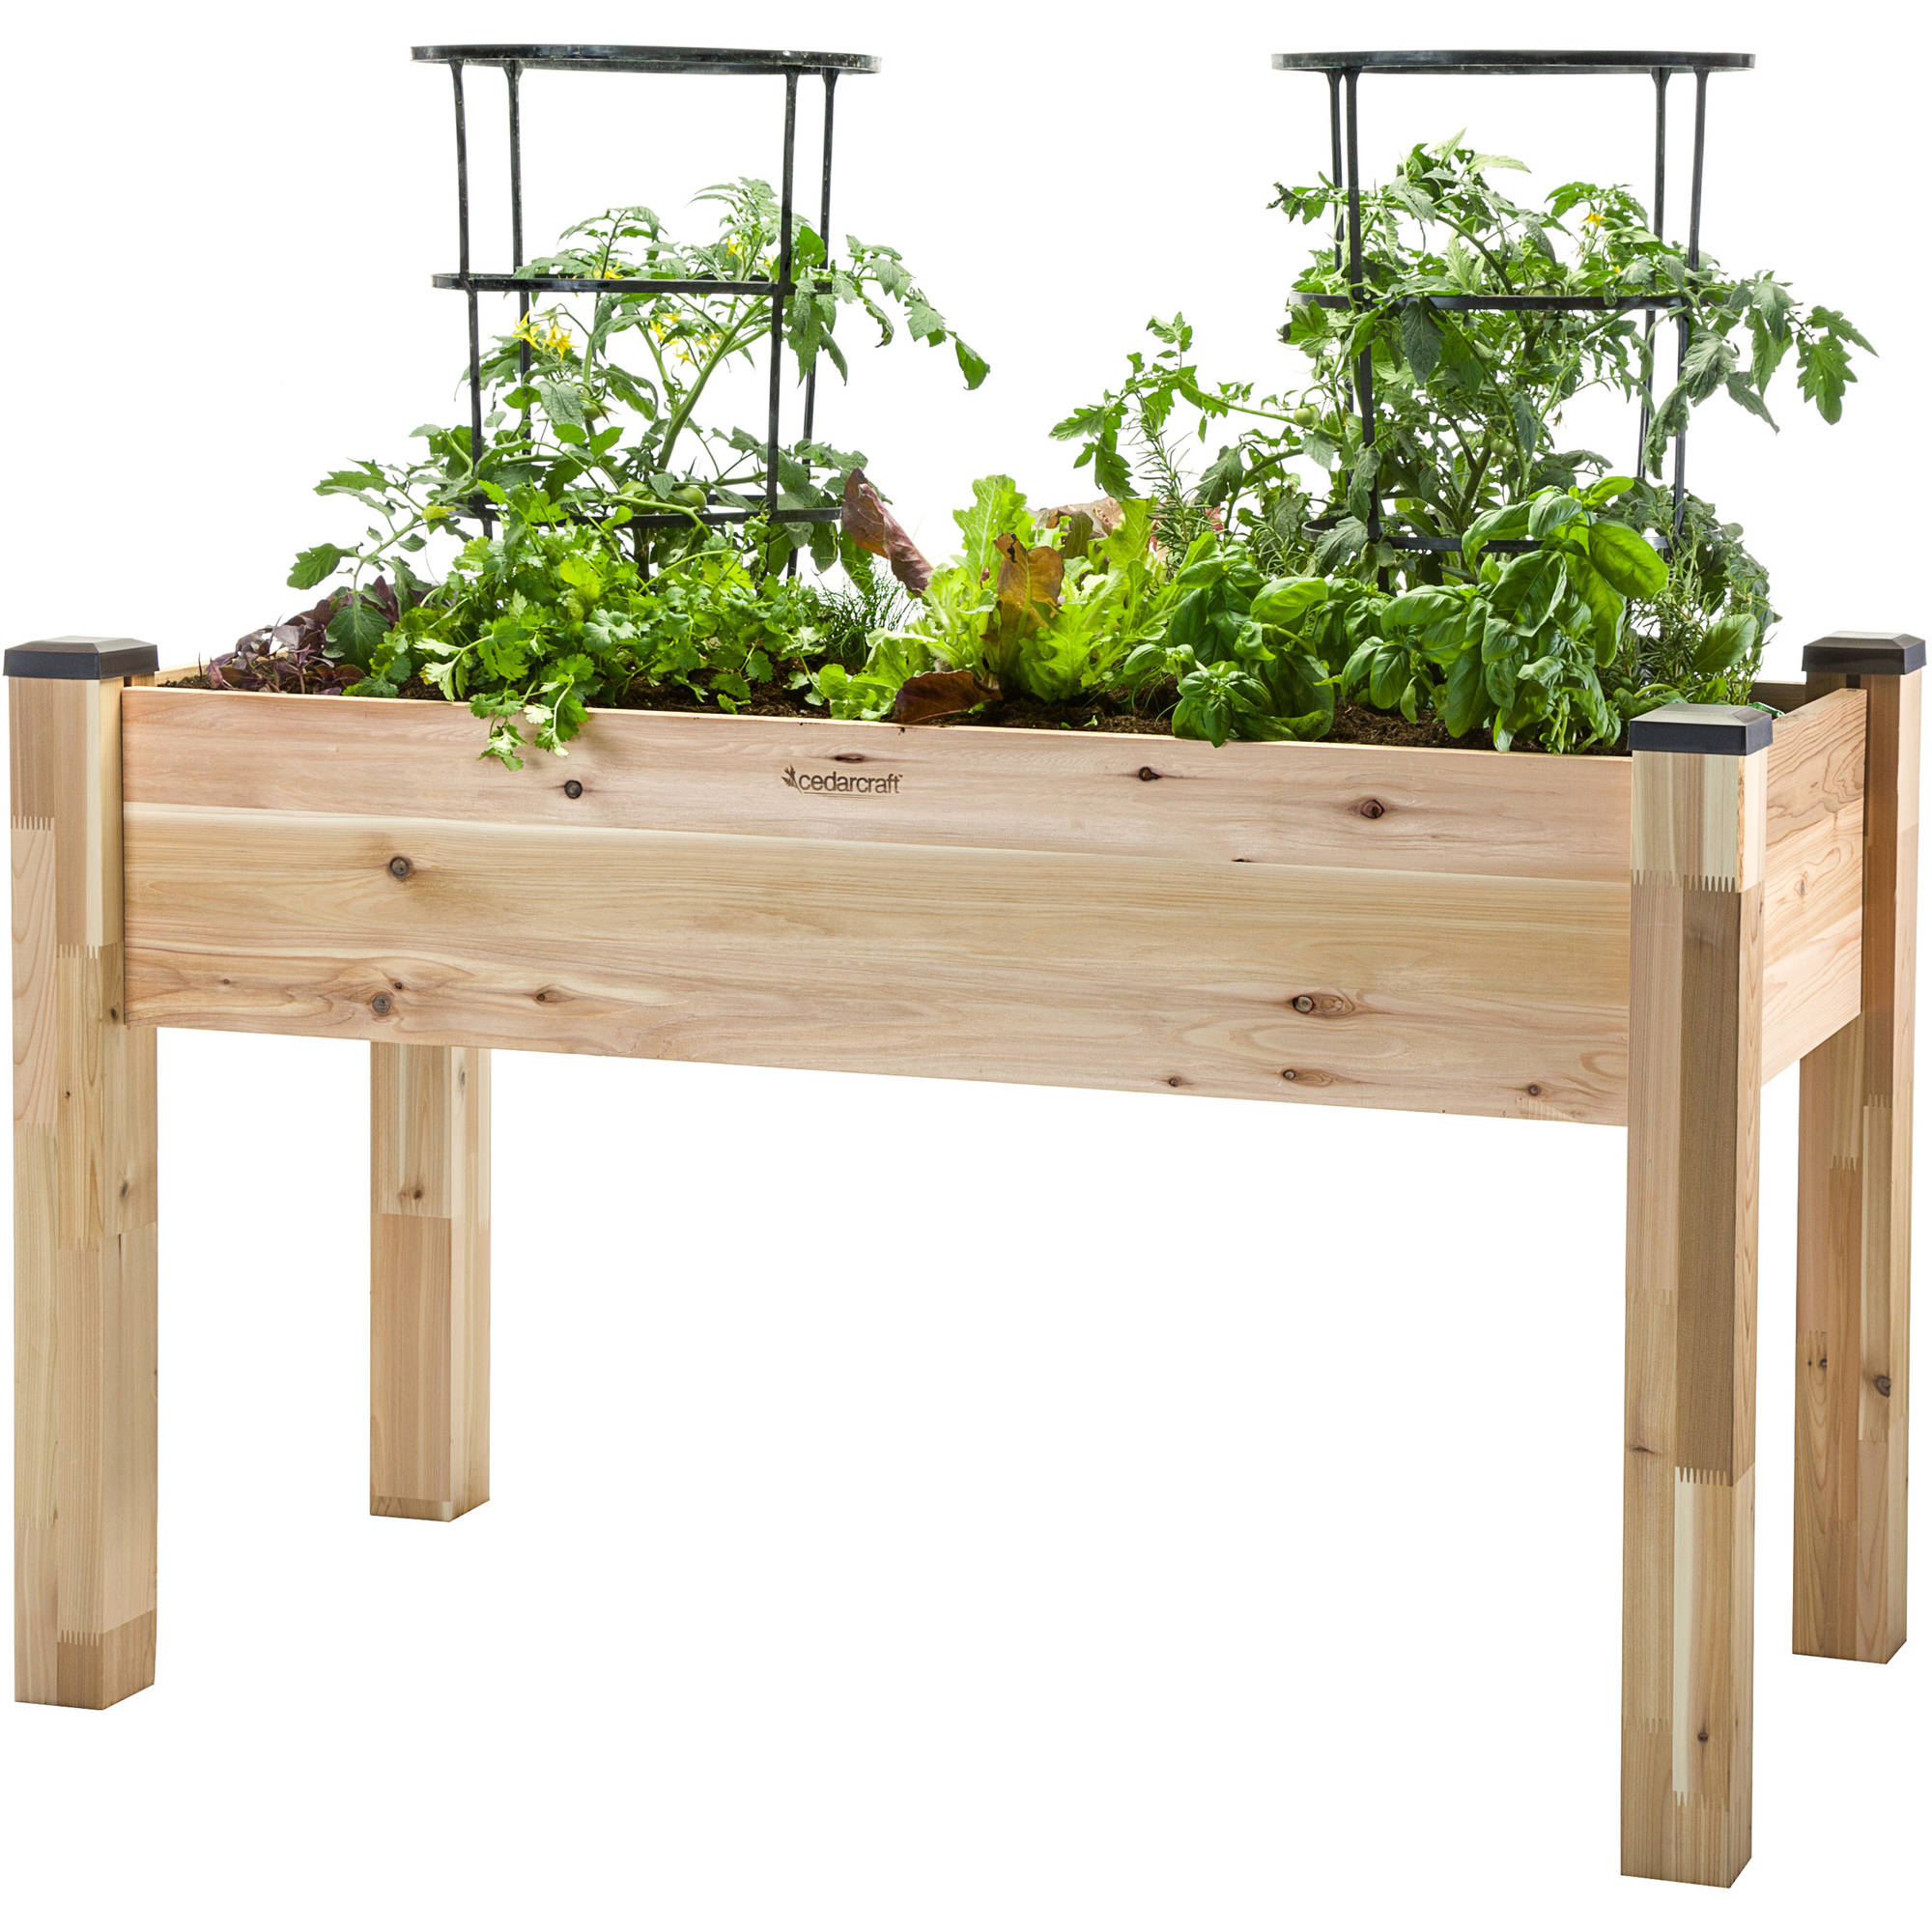 "CedarCraft 23"" x 49"" Elevated Planter by Dobi and Associates"